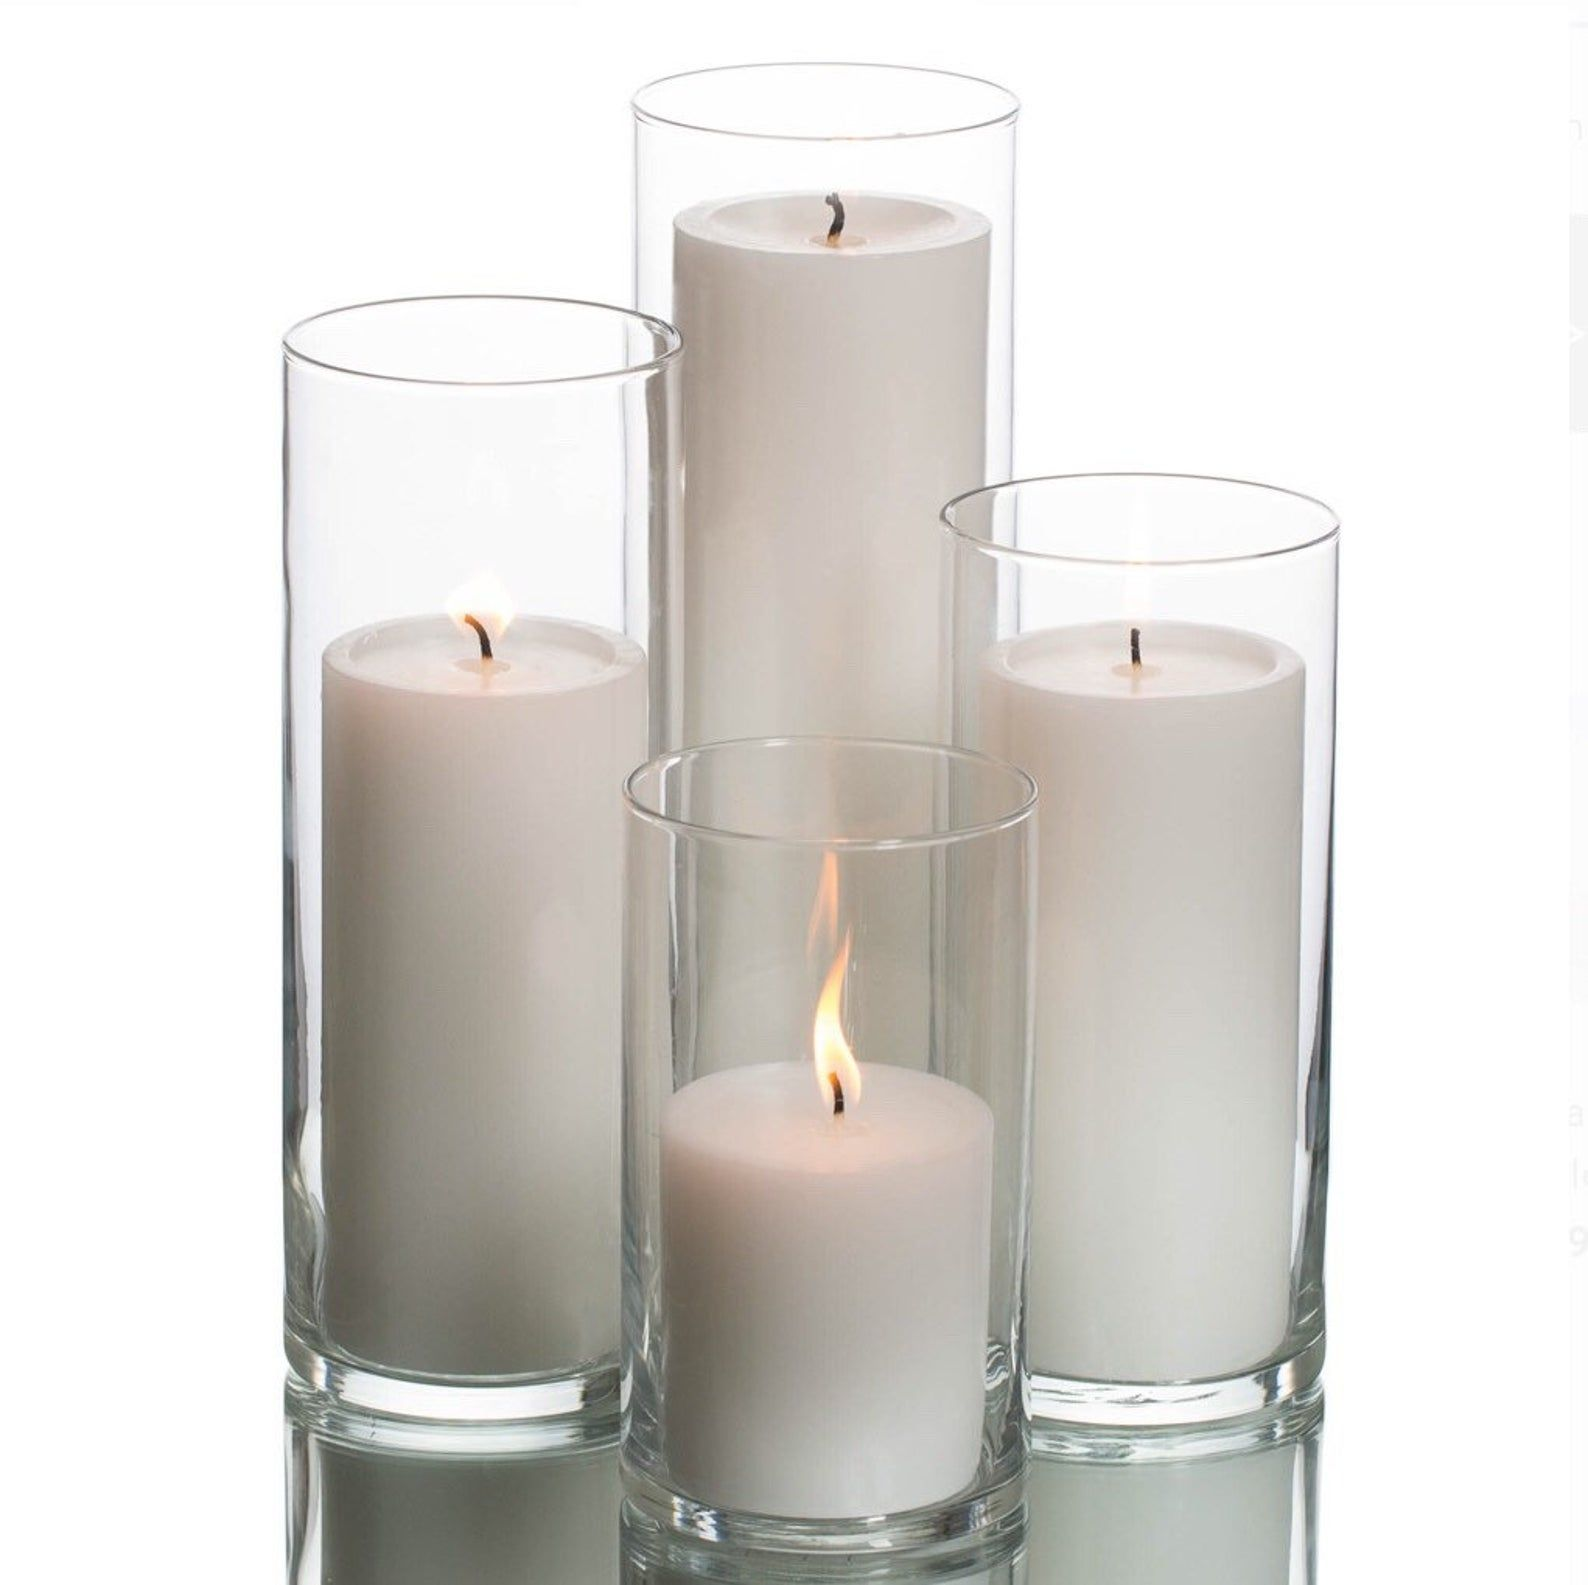 6 Clear Cylinder Vasesglass Cylinder Vaseswedding Etsy In 2020 Glass Pillar Candle Pillar Candle Centerpieces Pillar Candles